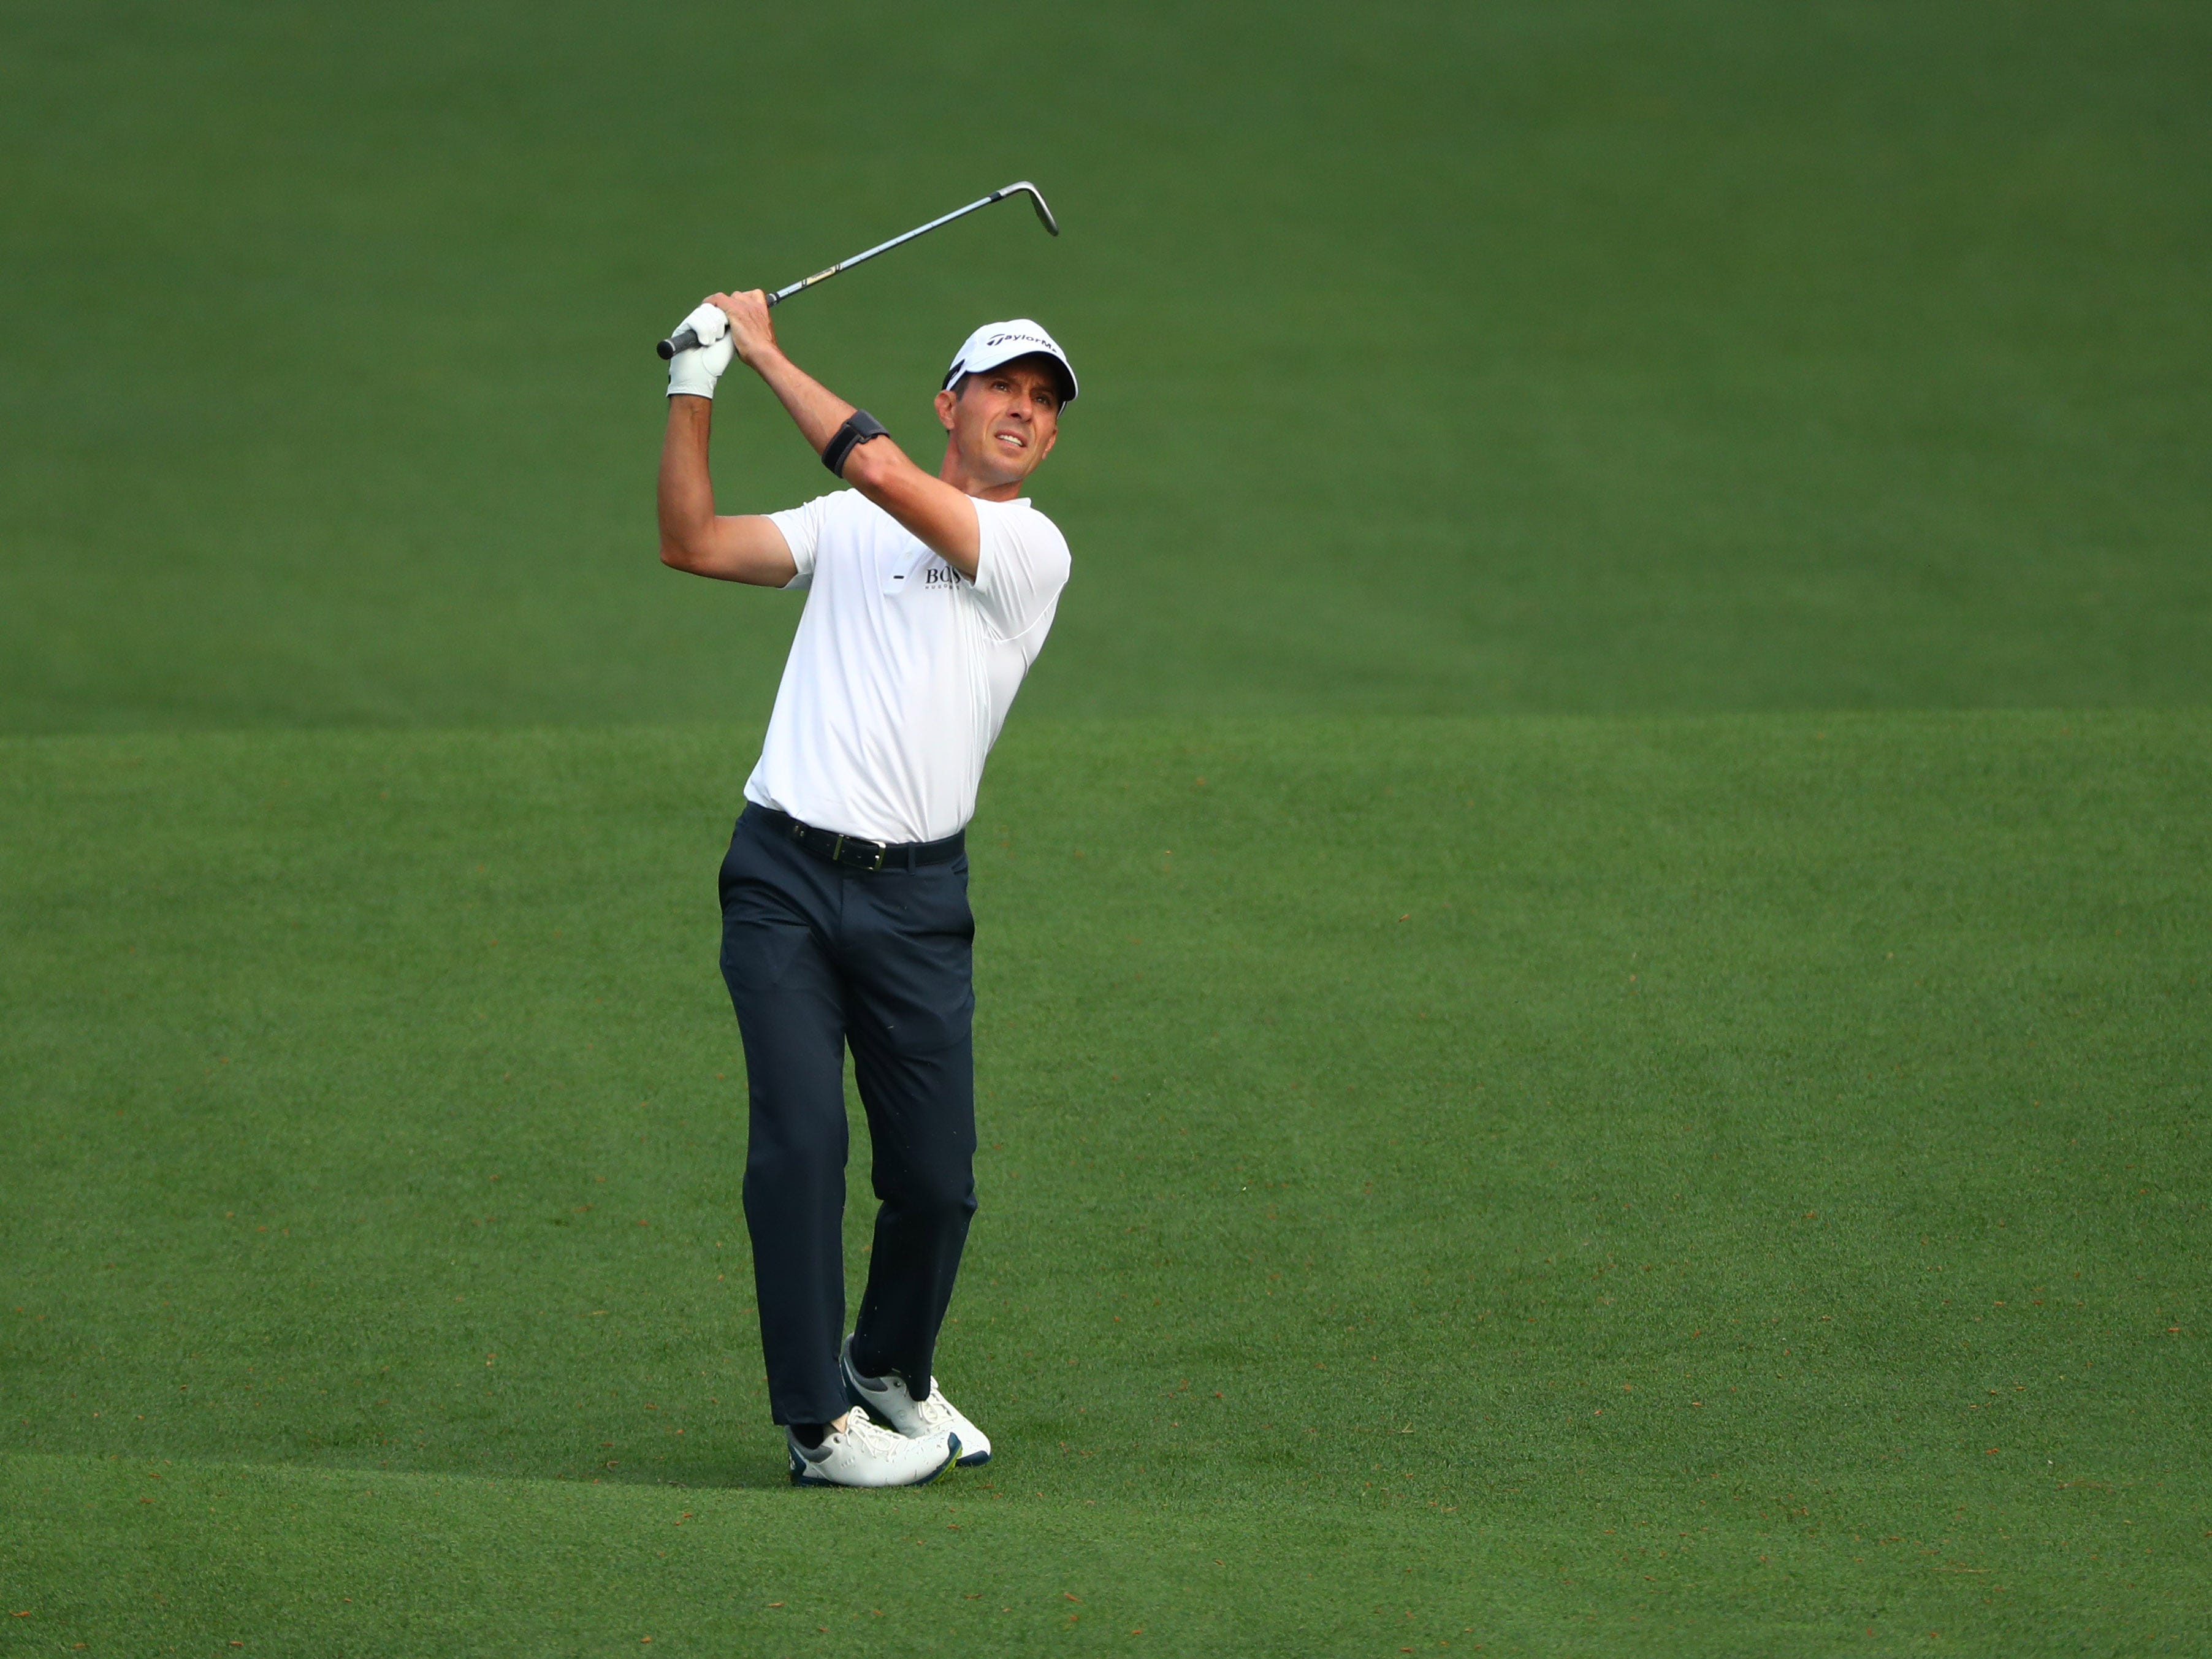 Apr 11, 2019; Augusta, GA, USA; Mike Weir hits from the fairway on the 2nd hole during the first round of The Masters golf tournament at Augusta National Golf Club.